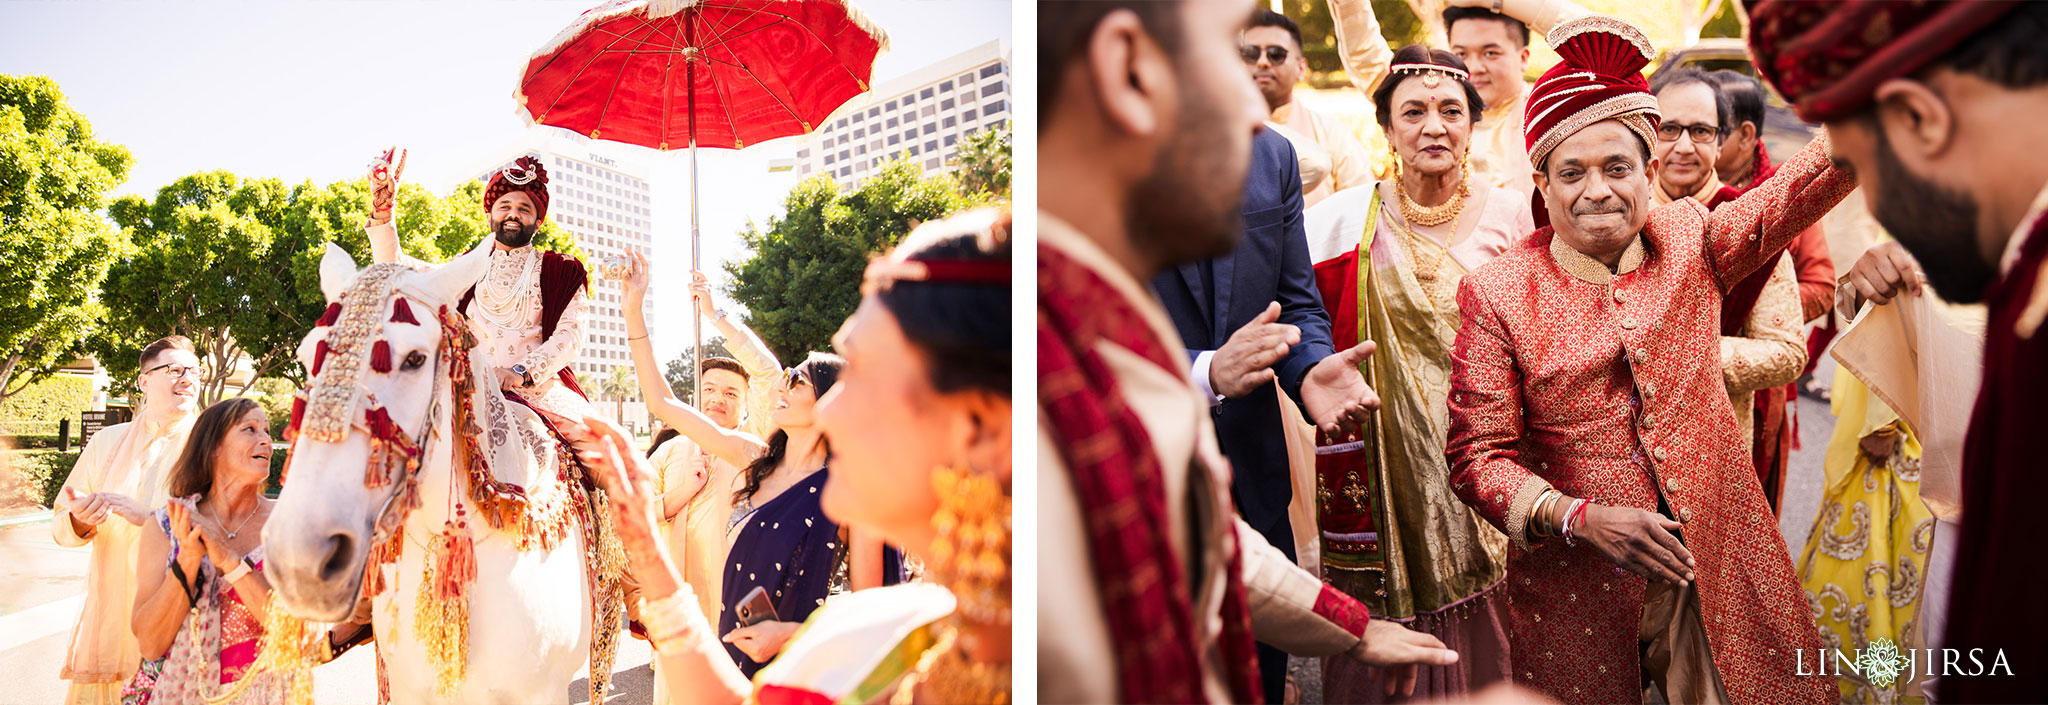 21 hotel irvine orange county indian wedding photography